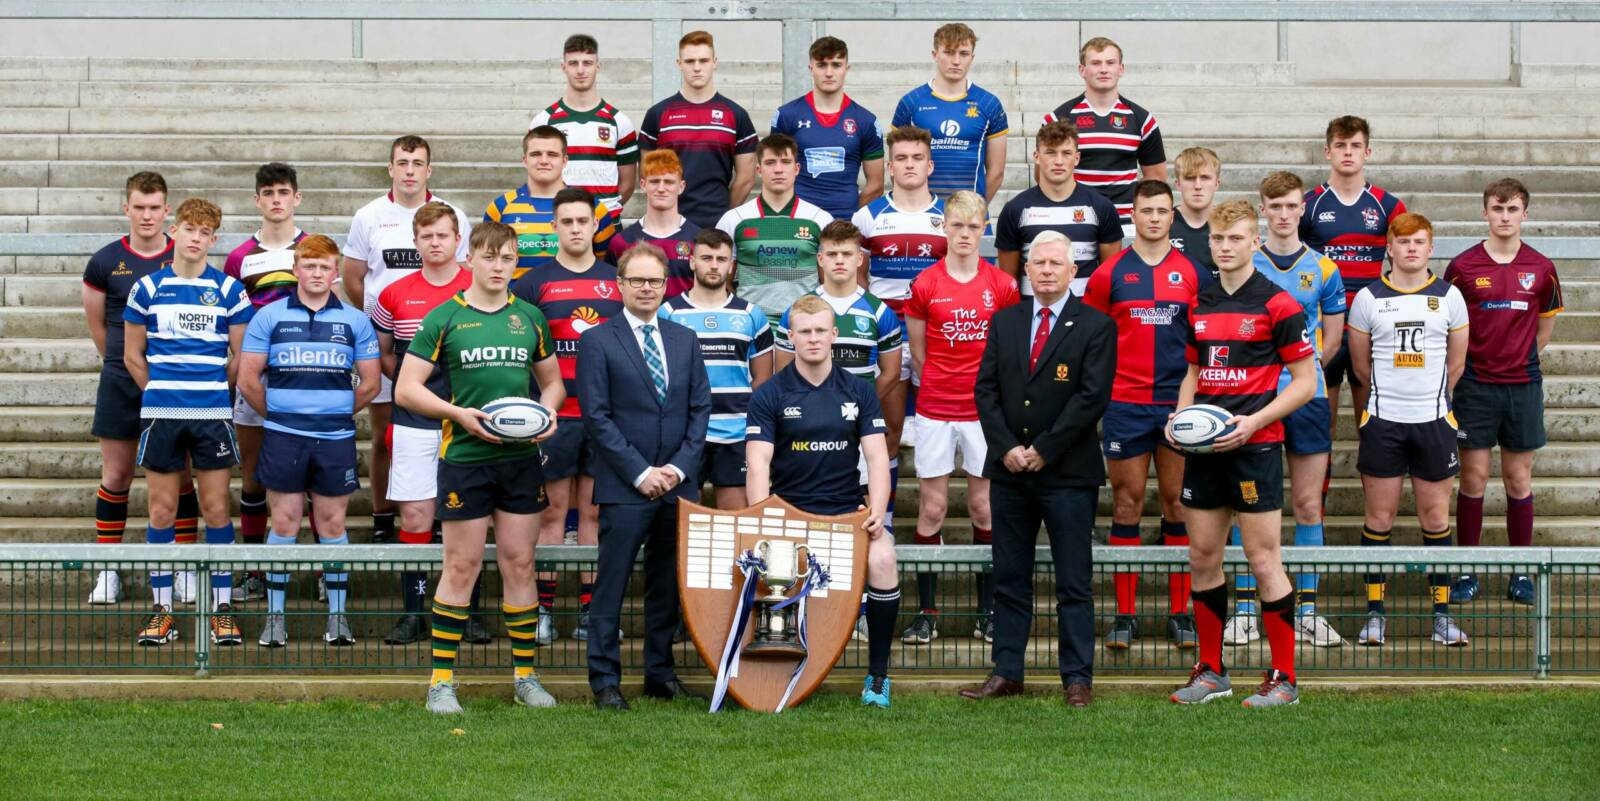 ulster schools cup betting sites